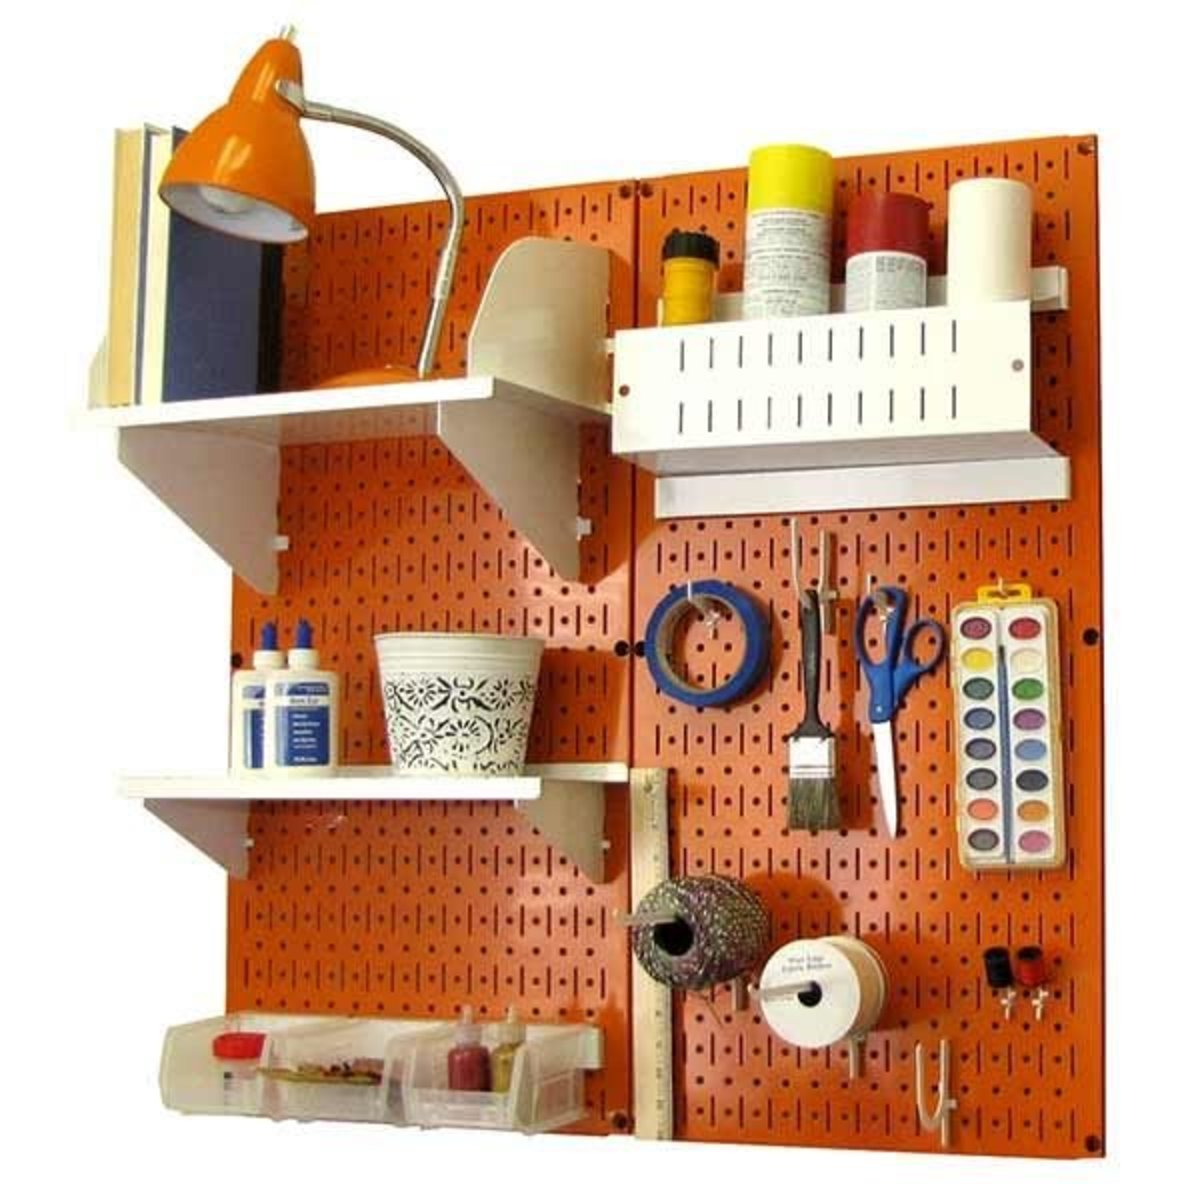 Wall Control 30-CC-200 YW Hobby Craft Pegboard Organizer Storage Kit with Yellow Pegboard and White Accessories